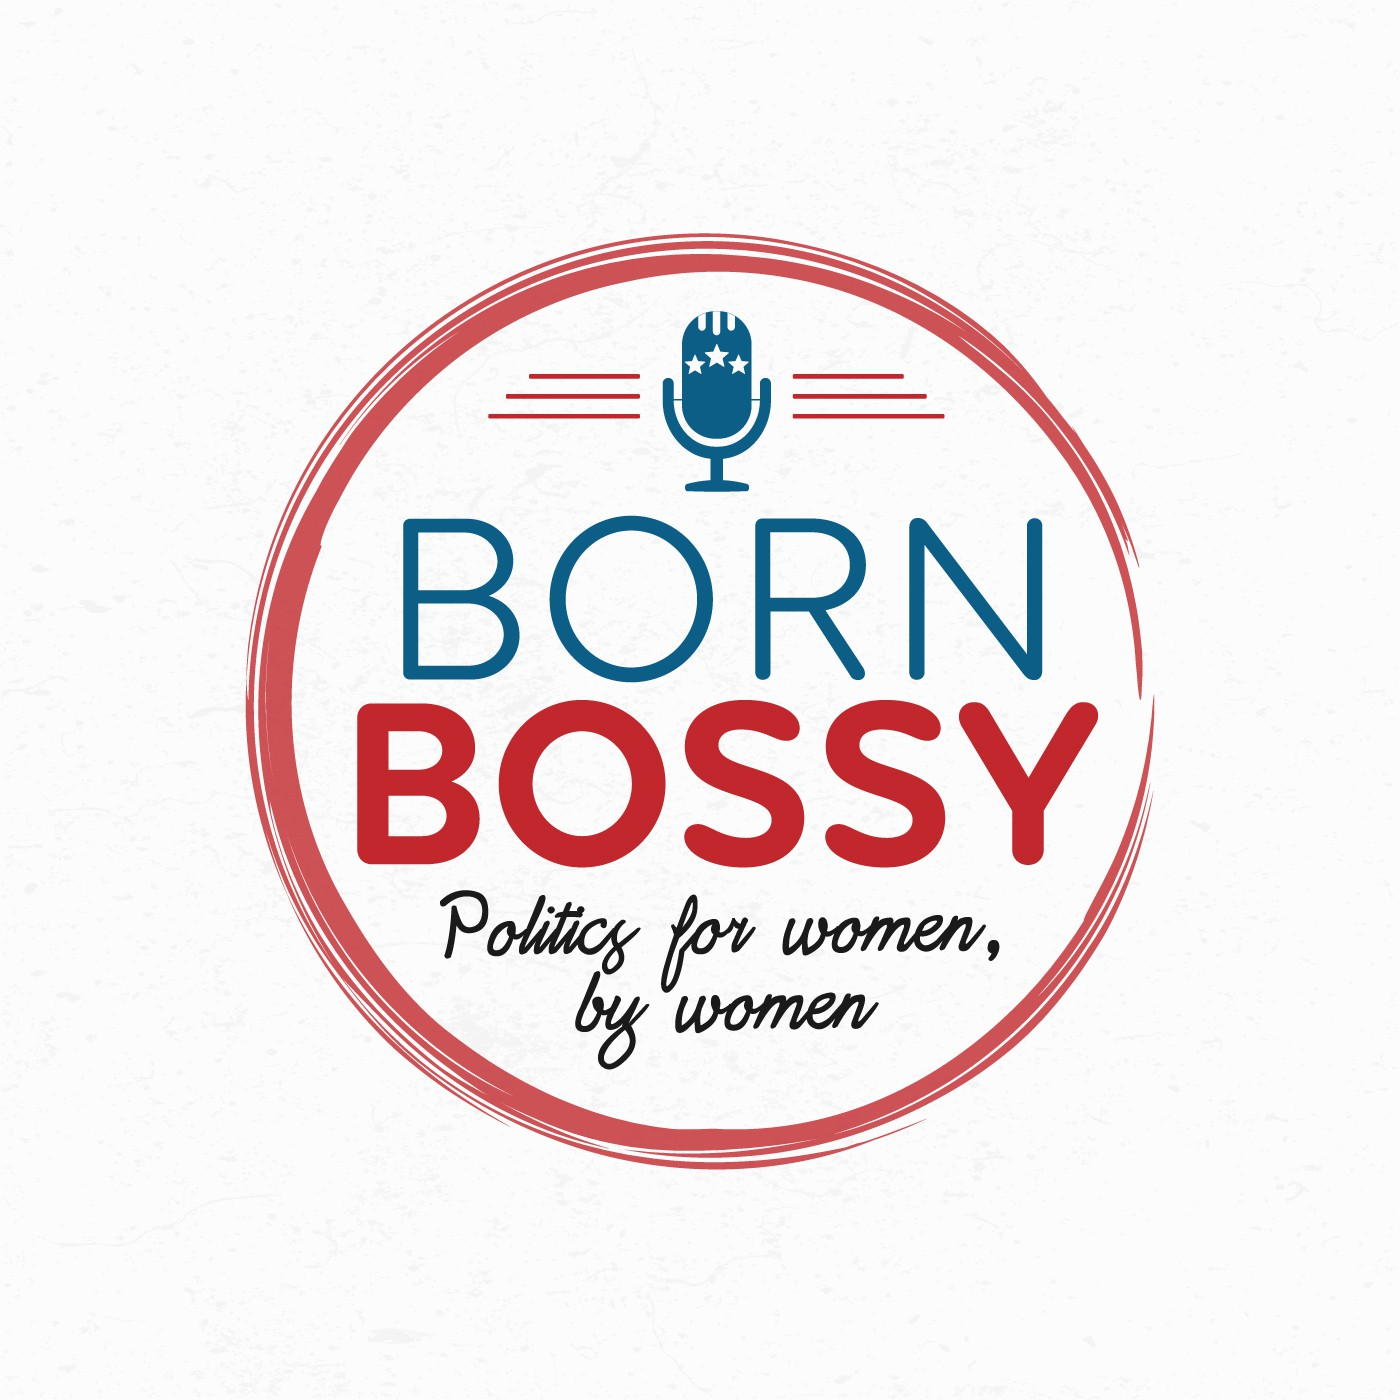 Political podcast for ladies! Targeting 23-40 demographic, hoping to increase political engagement.